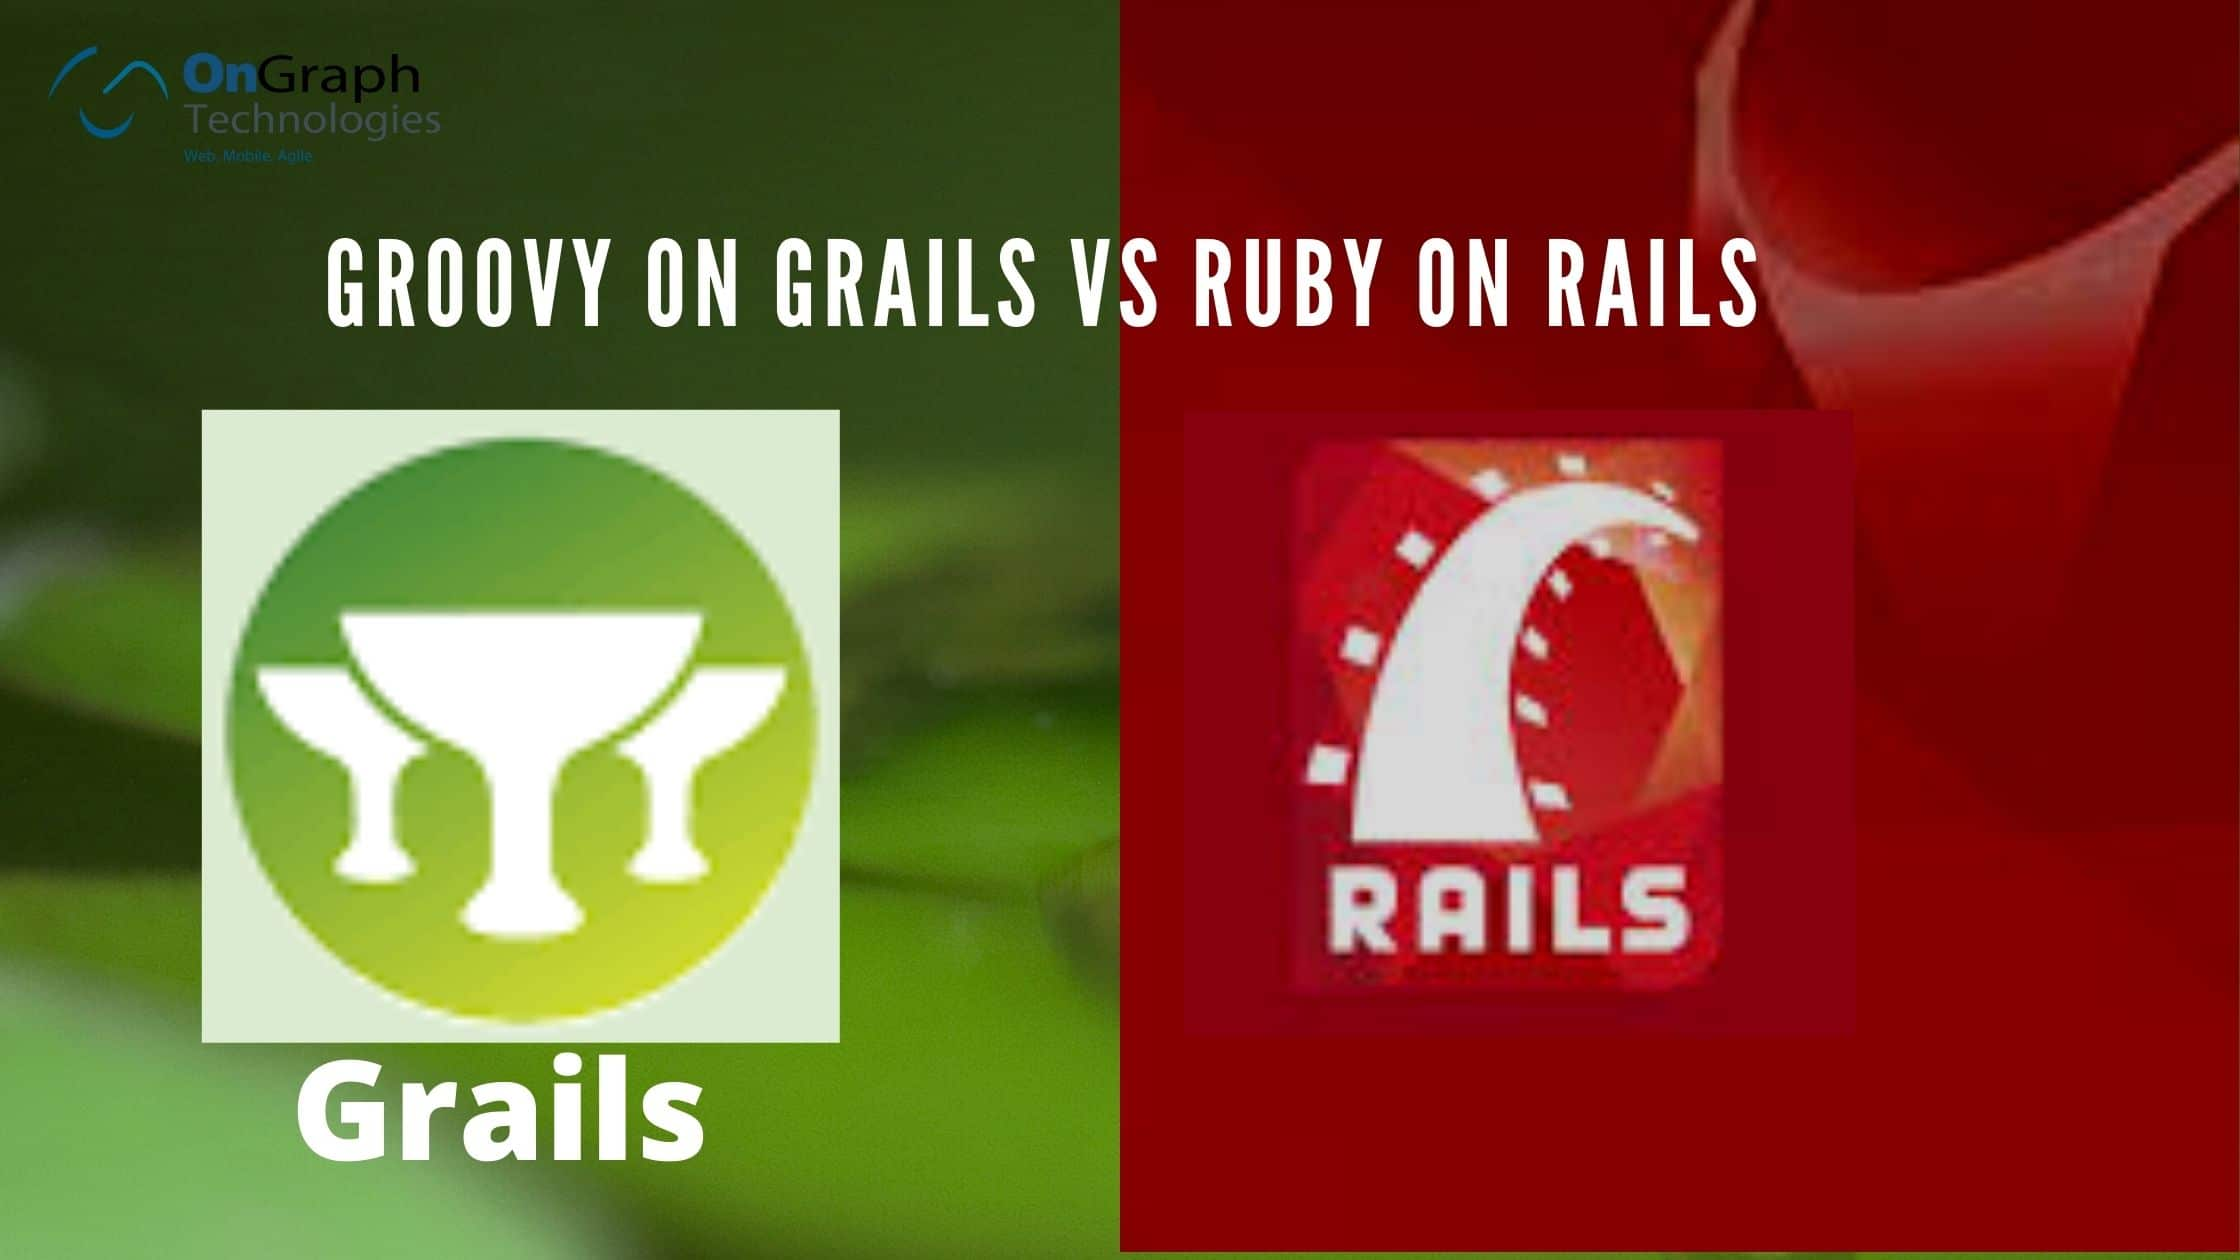 Ruby on Rails Vs Groovy on Grails –  The Key Differences